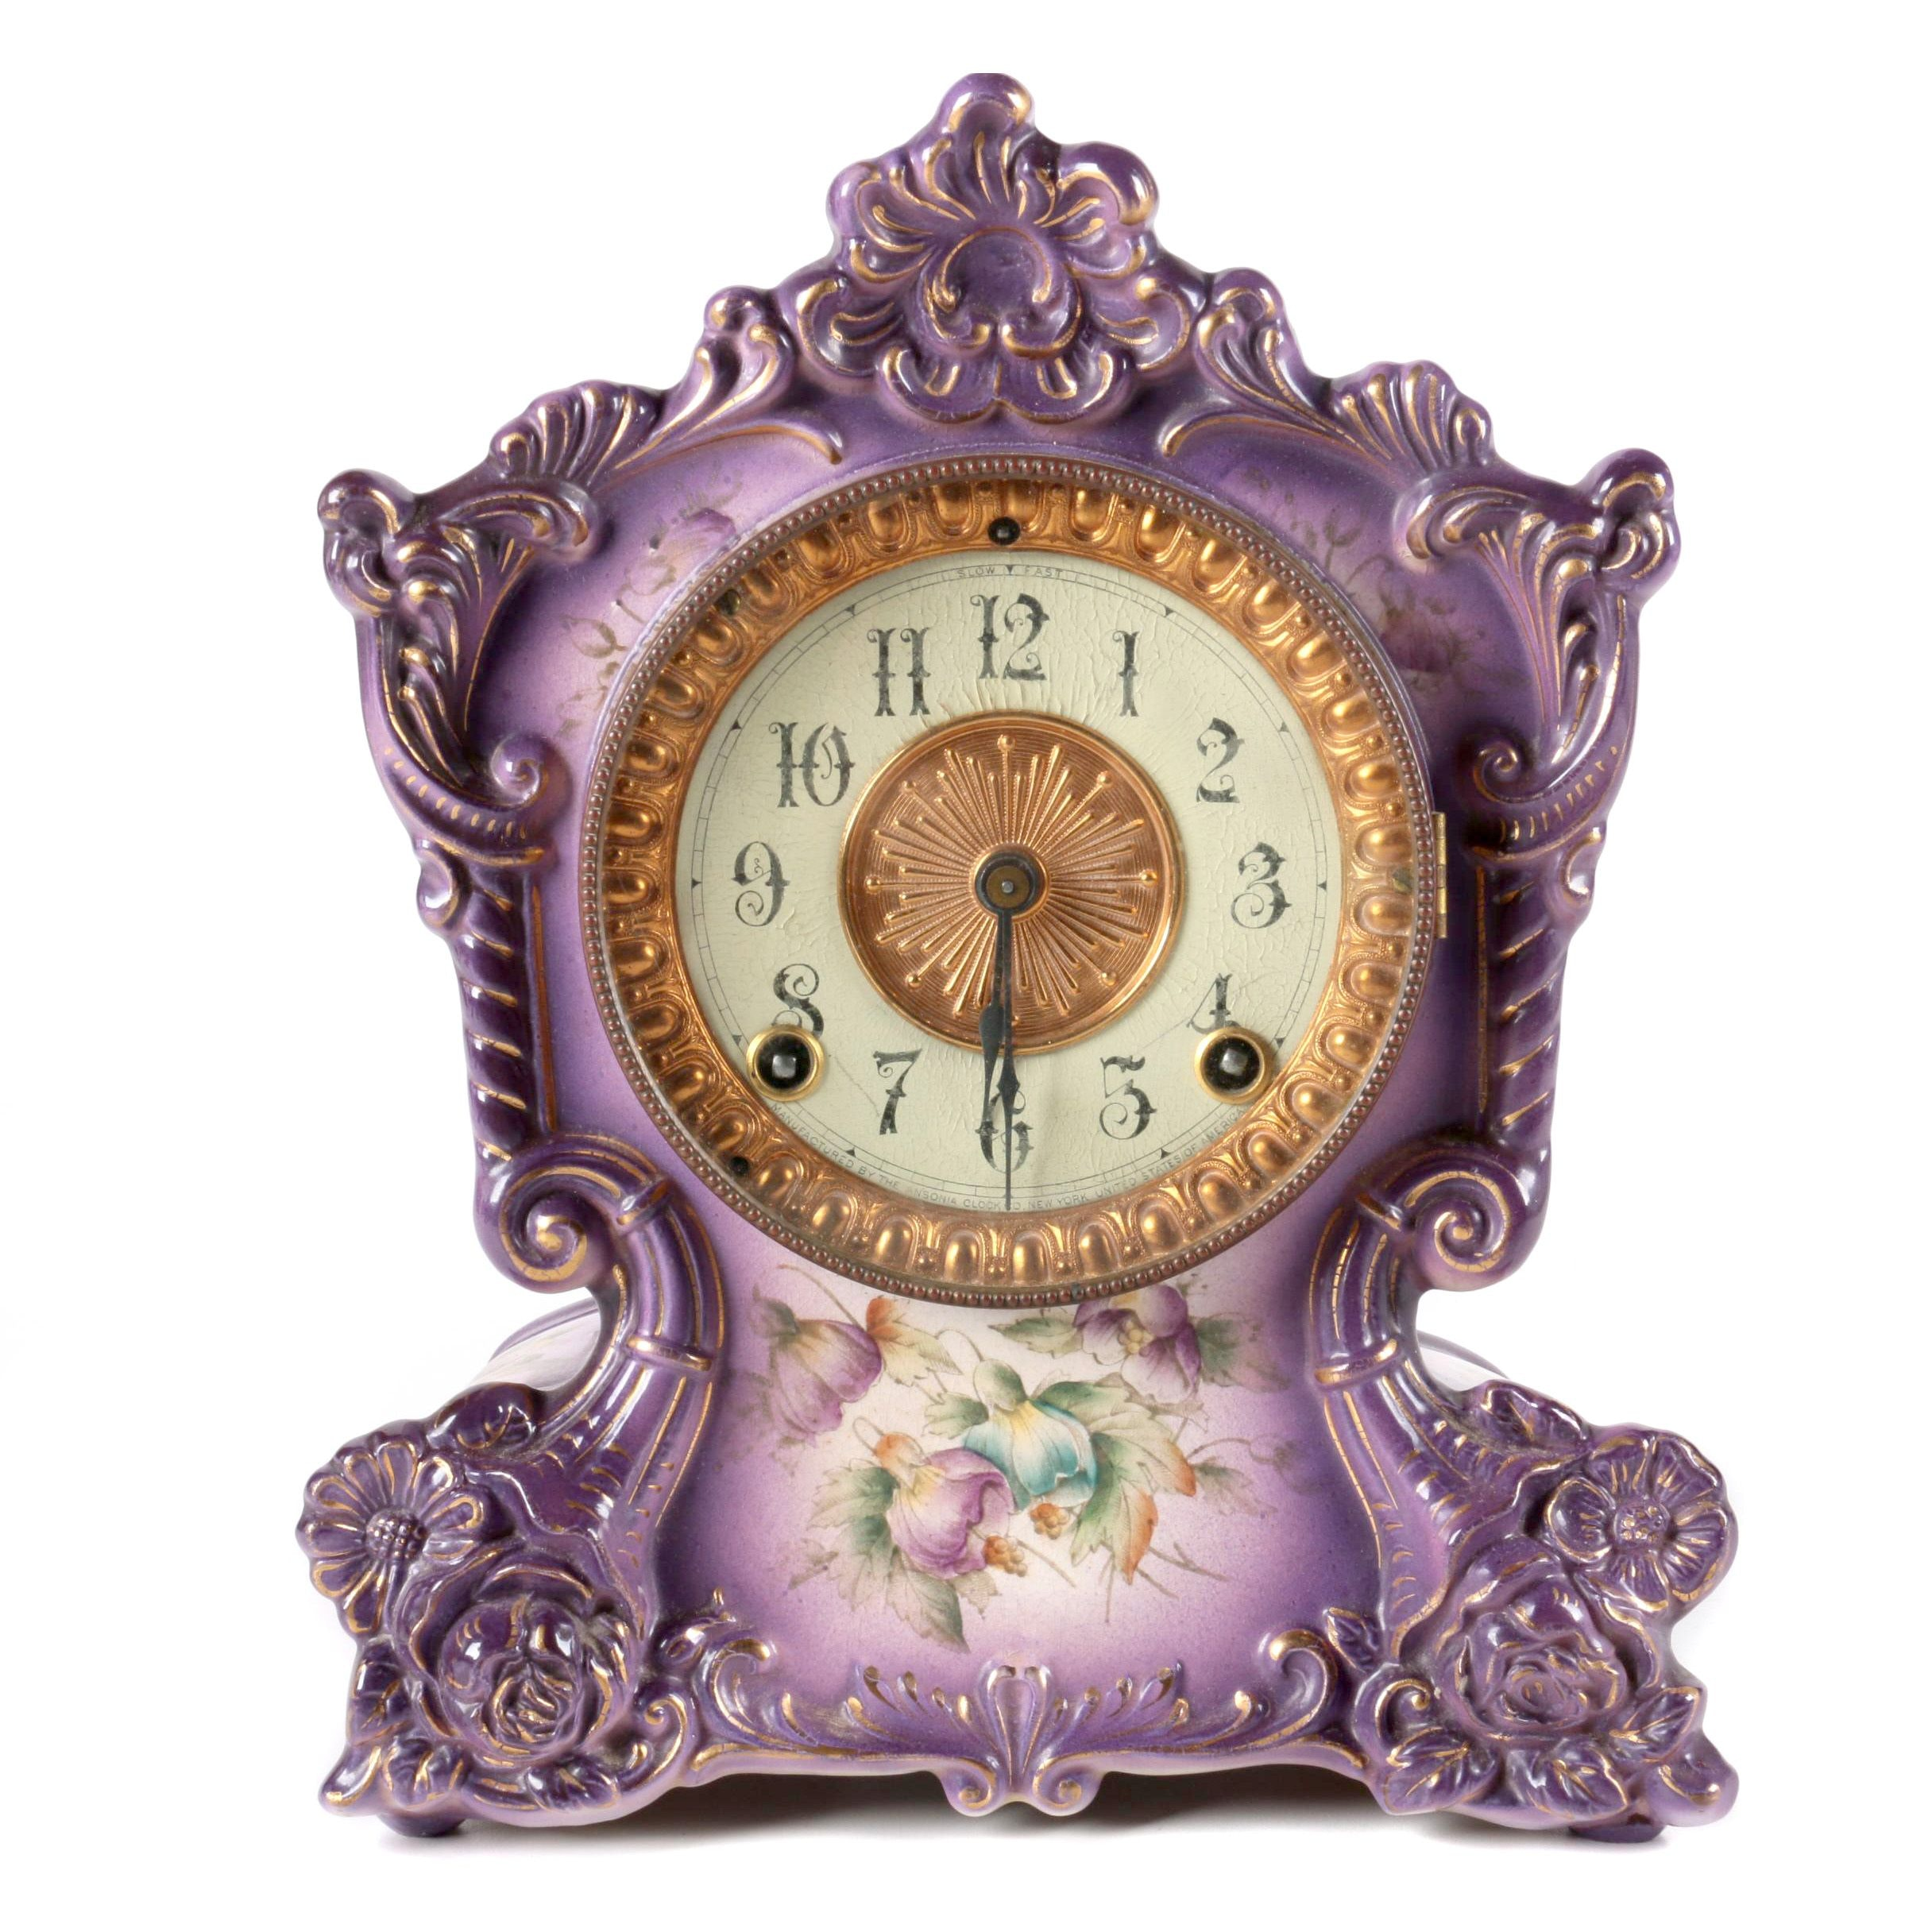 Vintage Mantle Clock by Tonquin